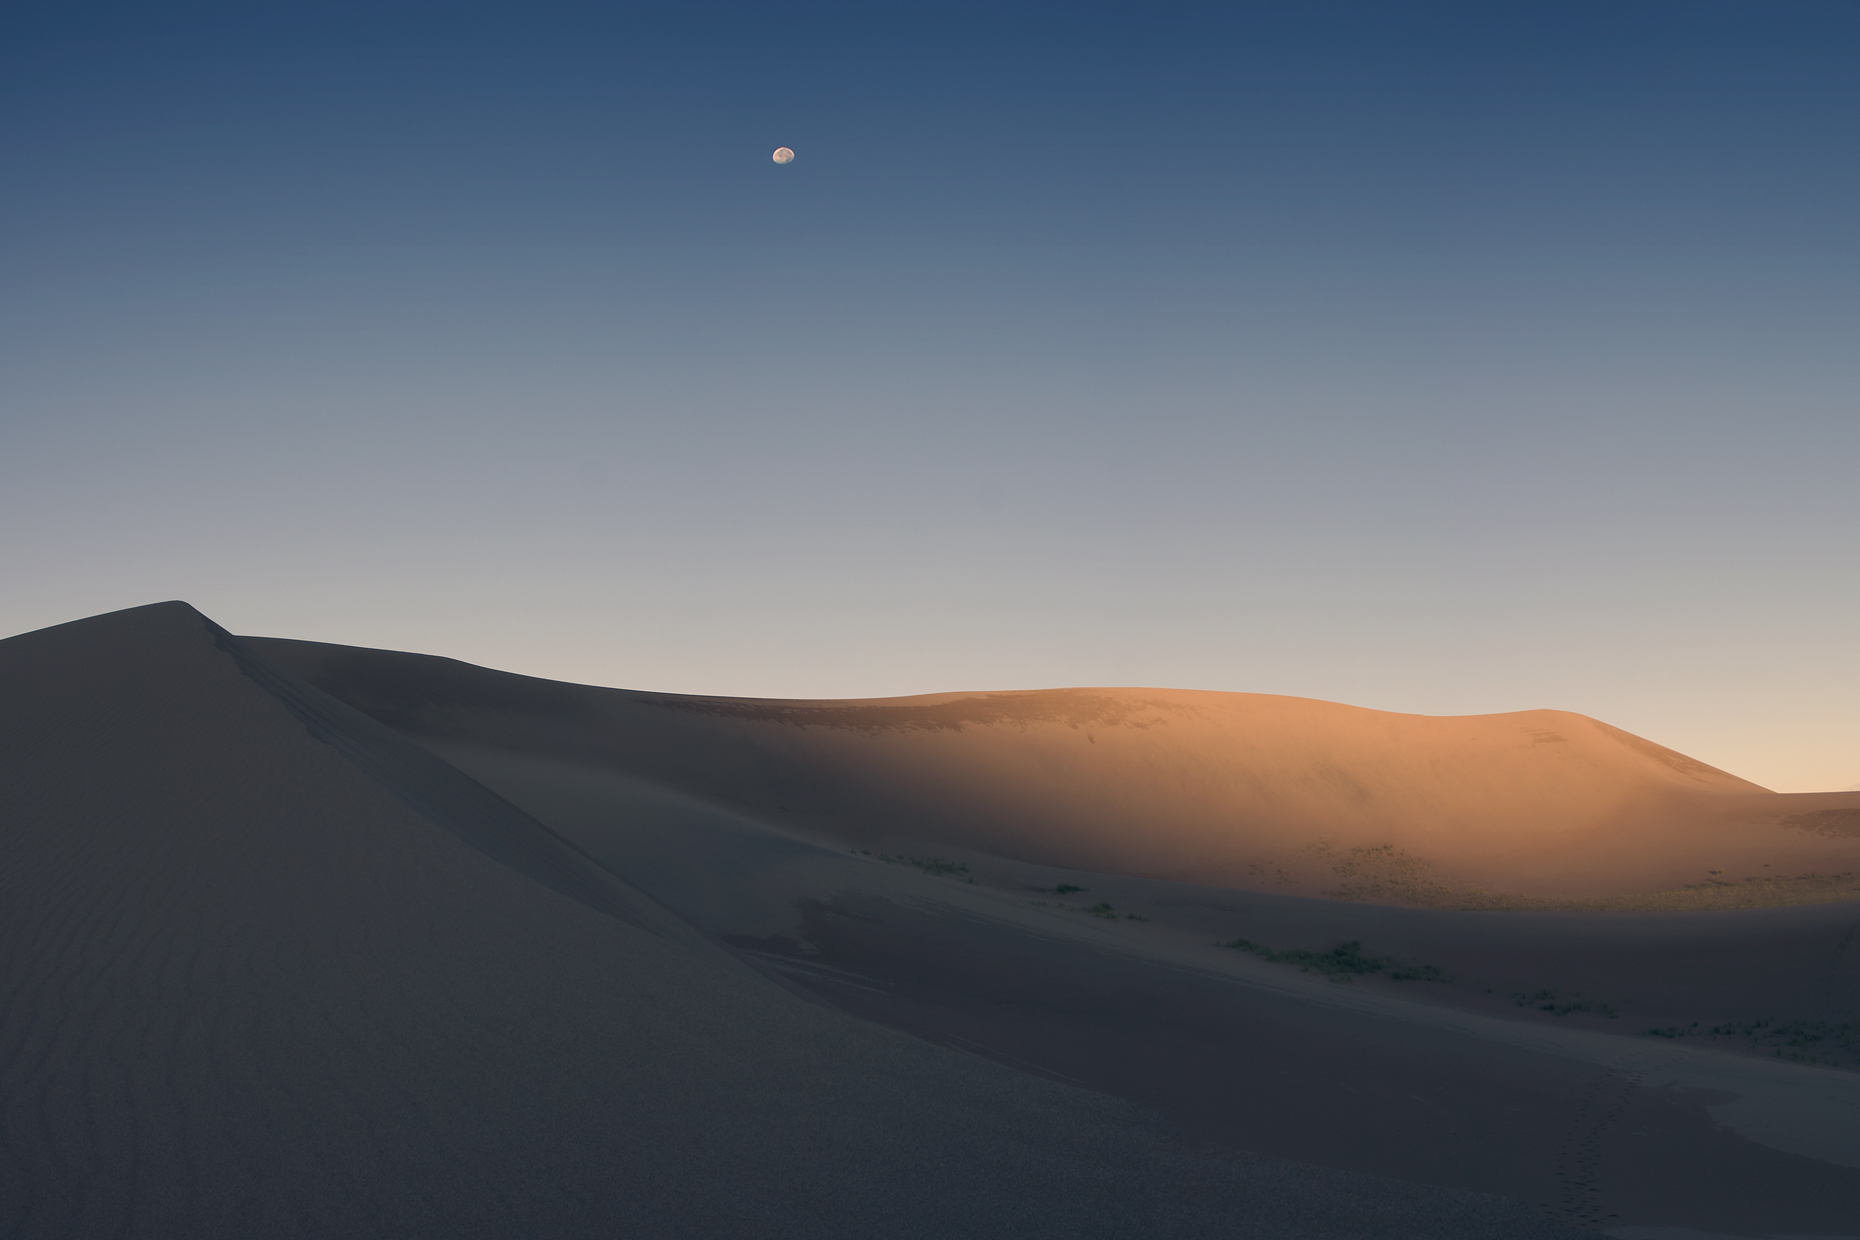 Places-great-sand-dunes-nation-park-colorado-sunrise